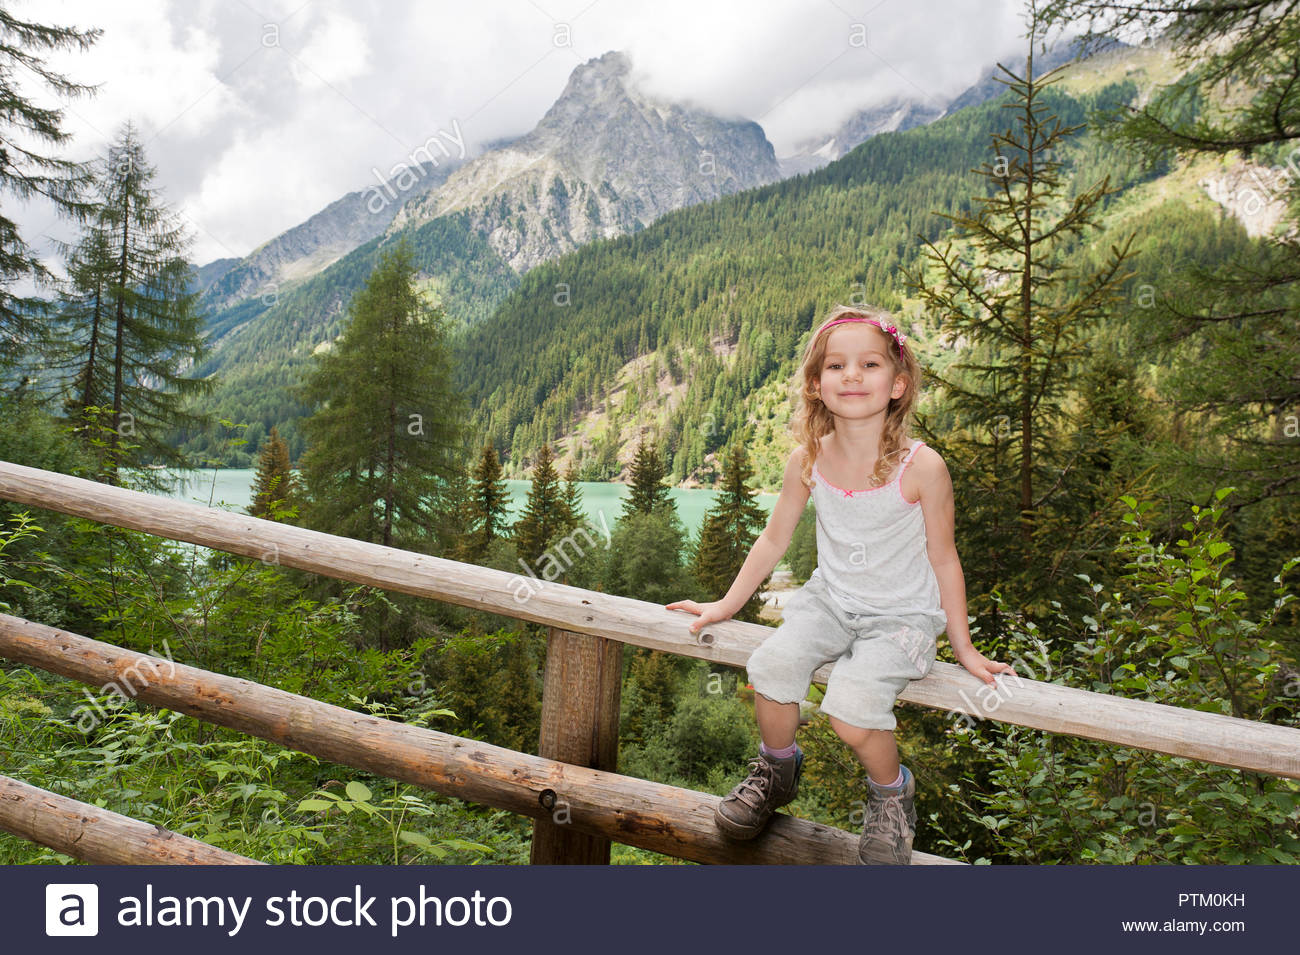 Little girl sitting on wooden railings, Lake Antholz in the back, Rasun-Anterselva, Puster Valley, South Tyrol, Italy - Stock Image